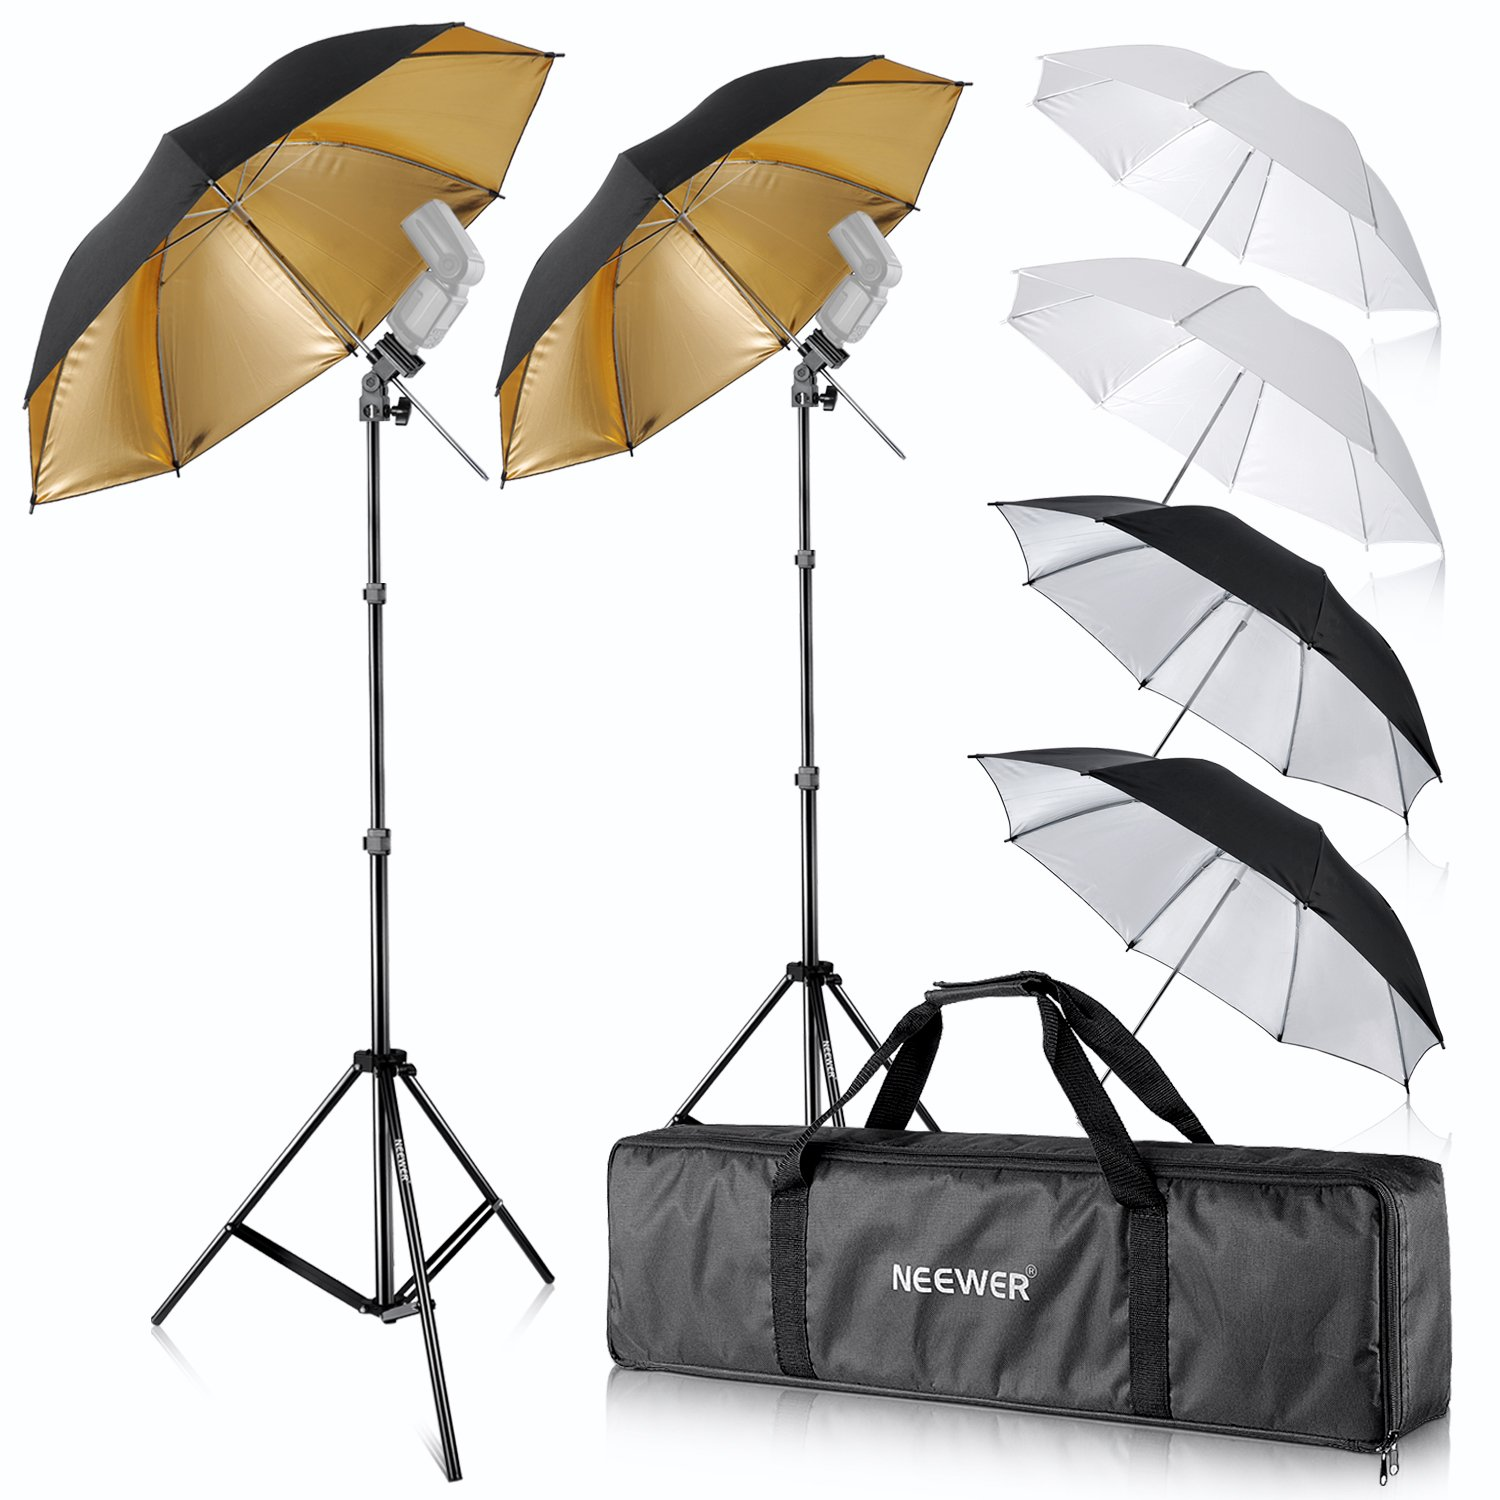 Neewer Flash Mount Three Umbrellas Kit (2) 33/84cm White...